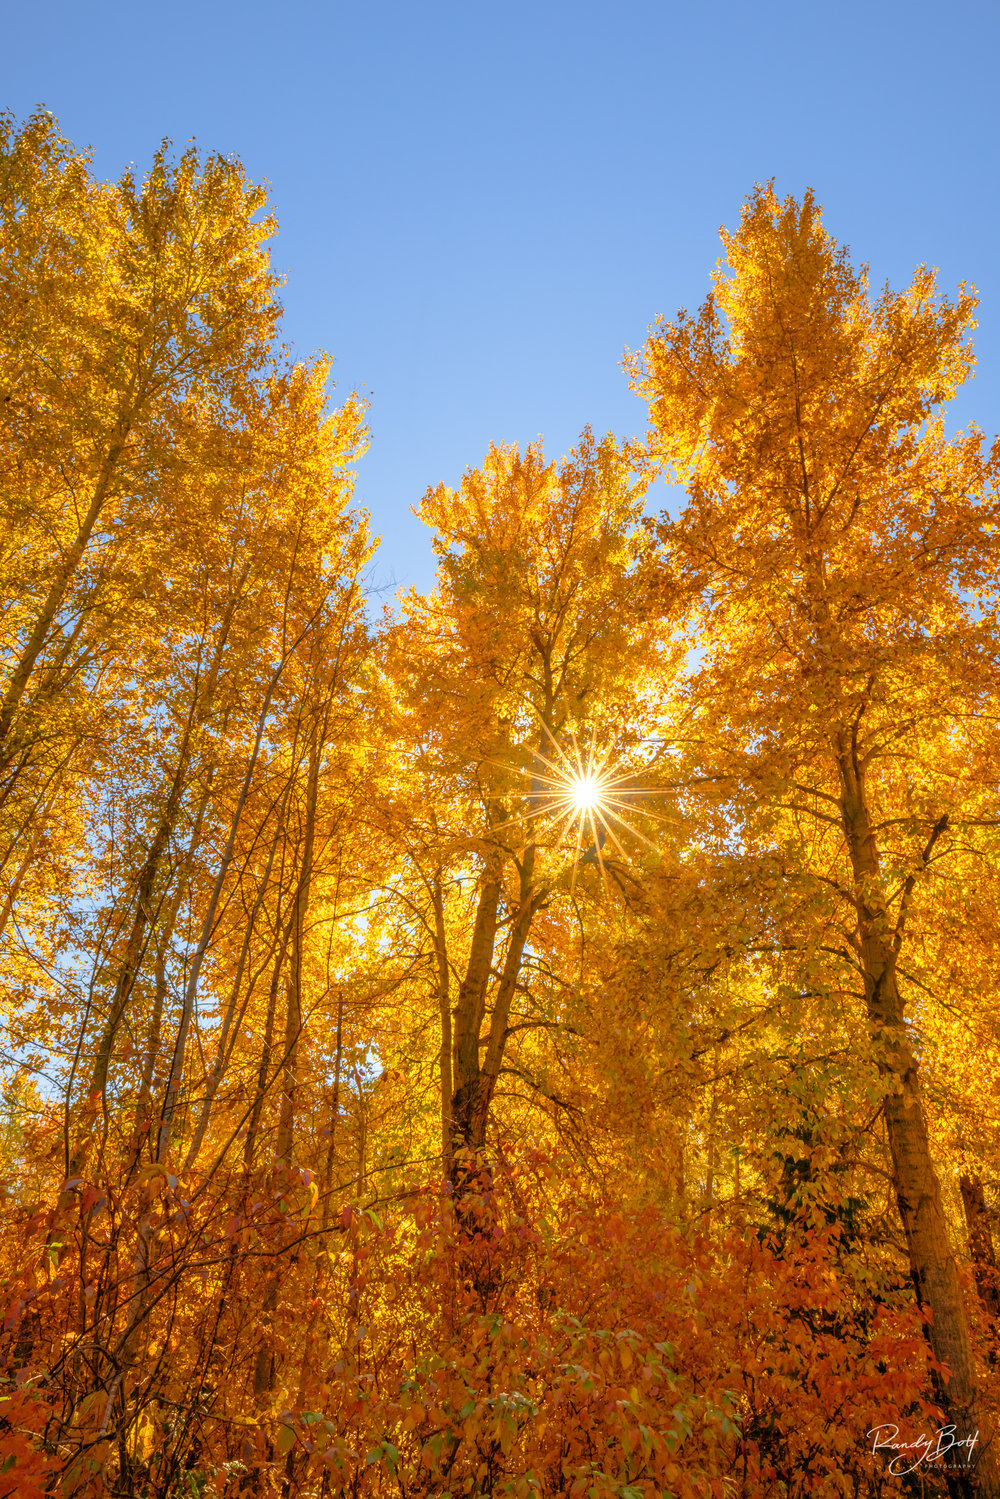 Image taken near Lake Wenatchee this fall. Enhanced using Solid Color Layers.